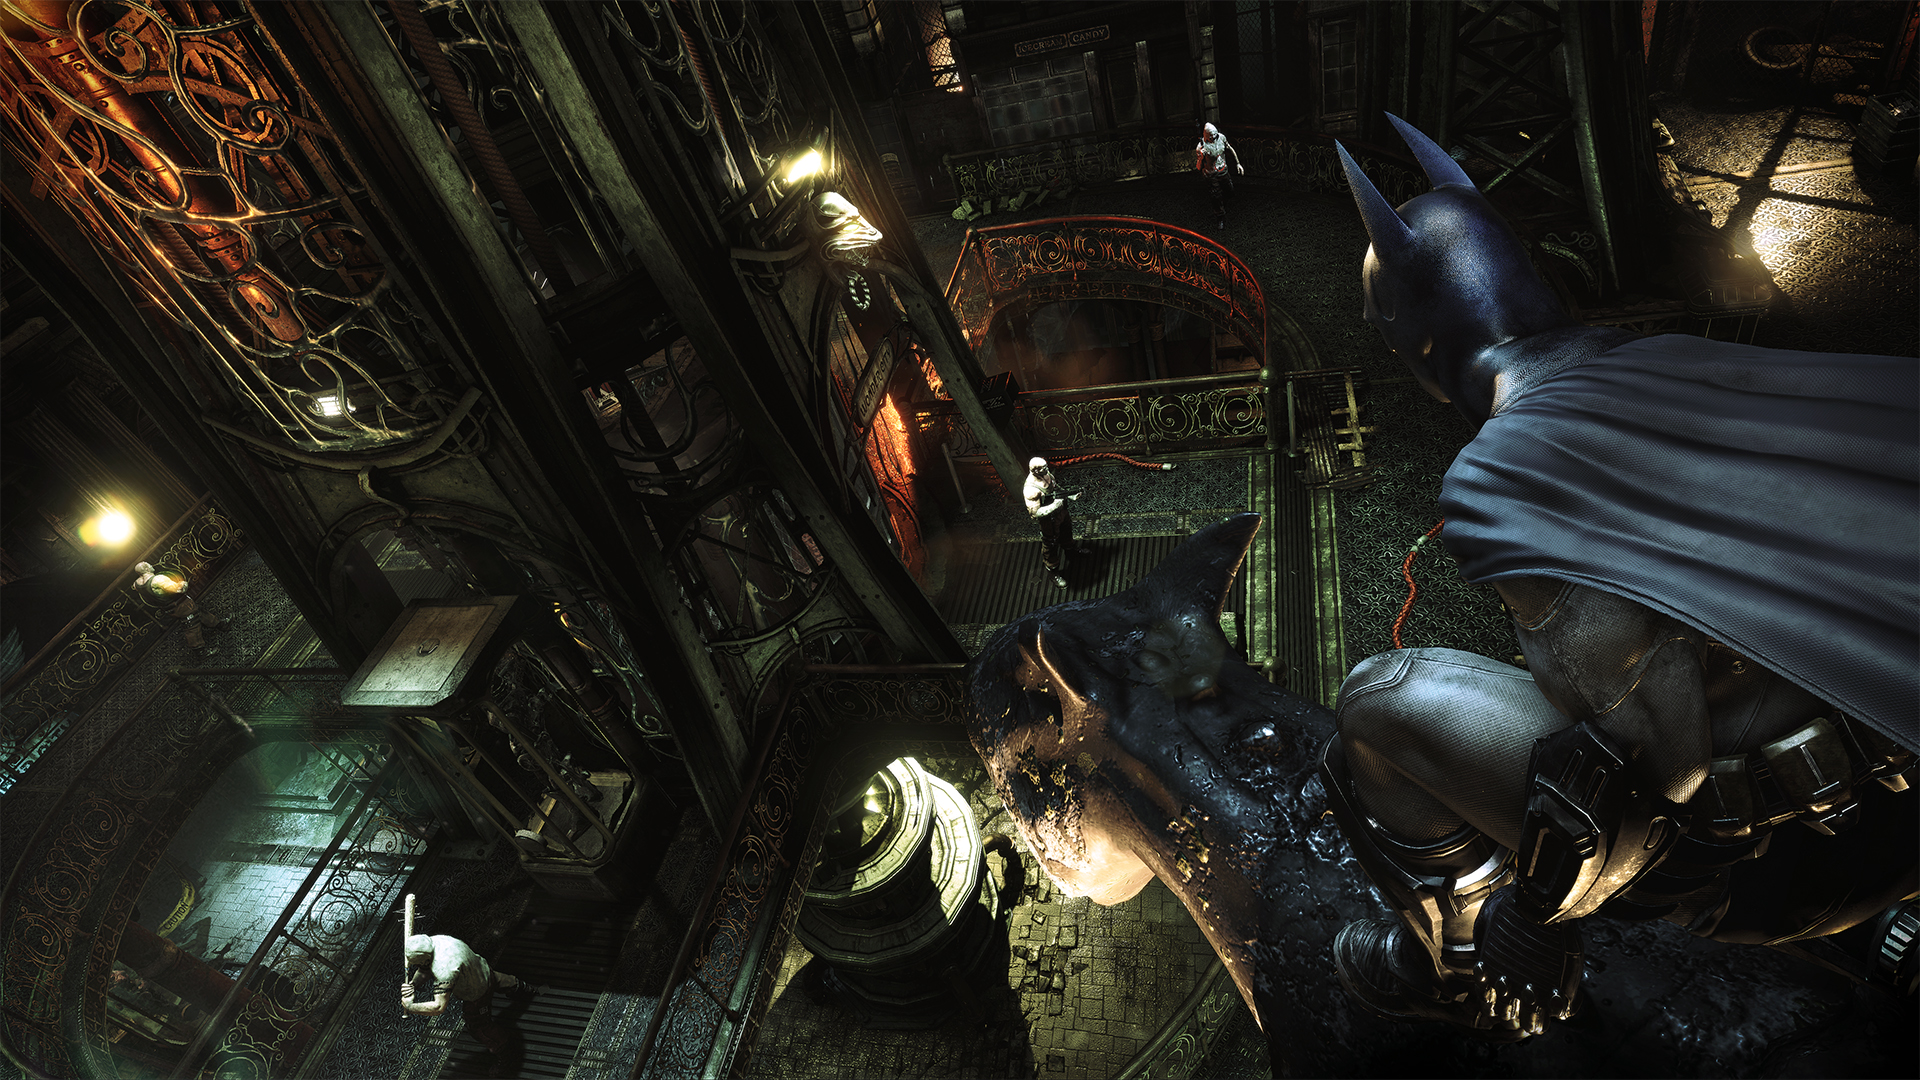 Return to Arkham: Ältere Batman-Actionspiele neu auf Unreal Engine 4 - Batman: Return to Arkham (Bild: Warner Bros)